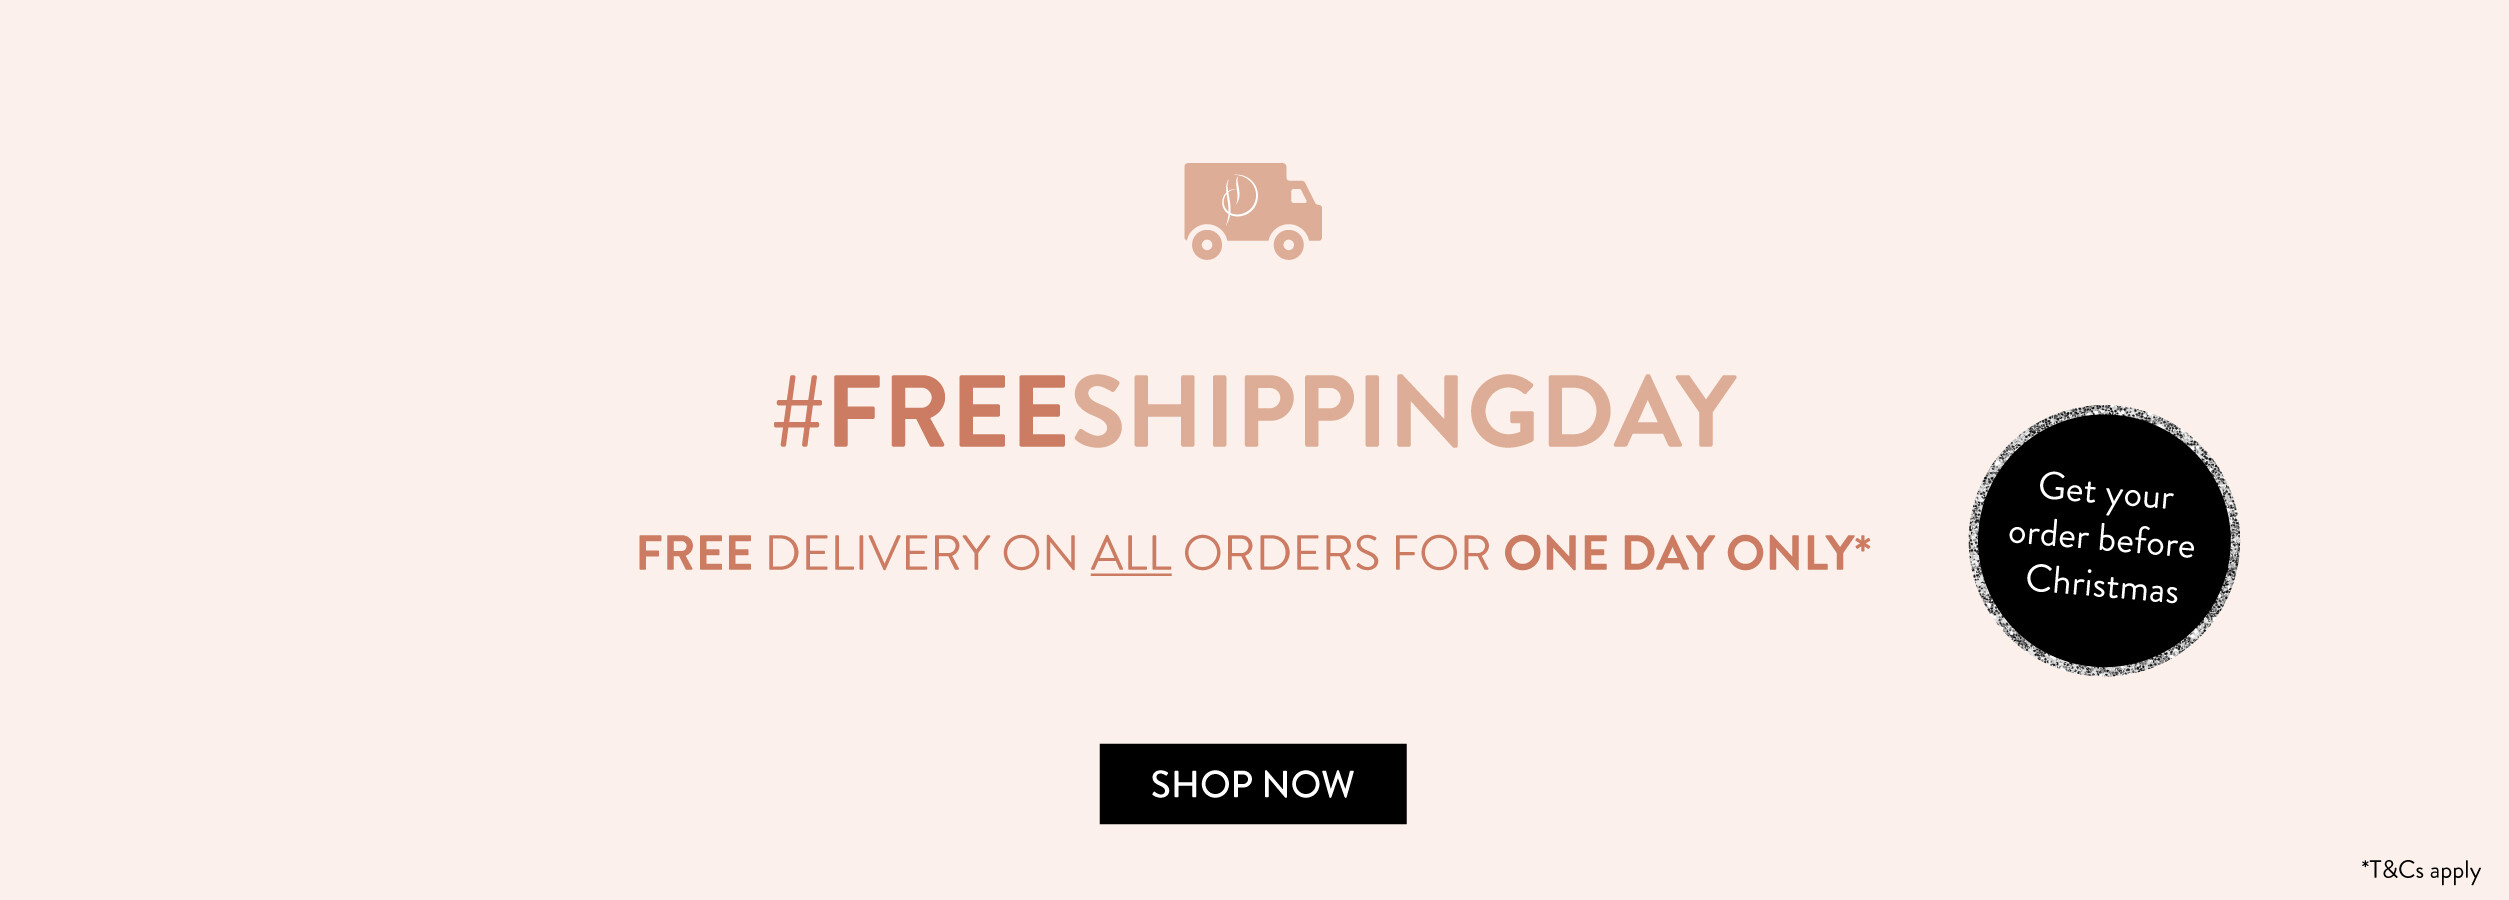 HD_BROWS_FREE-SHIPPING-DAY_BANNER_DESKTOP